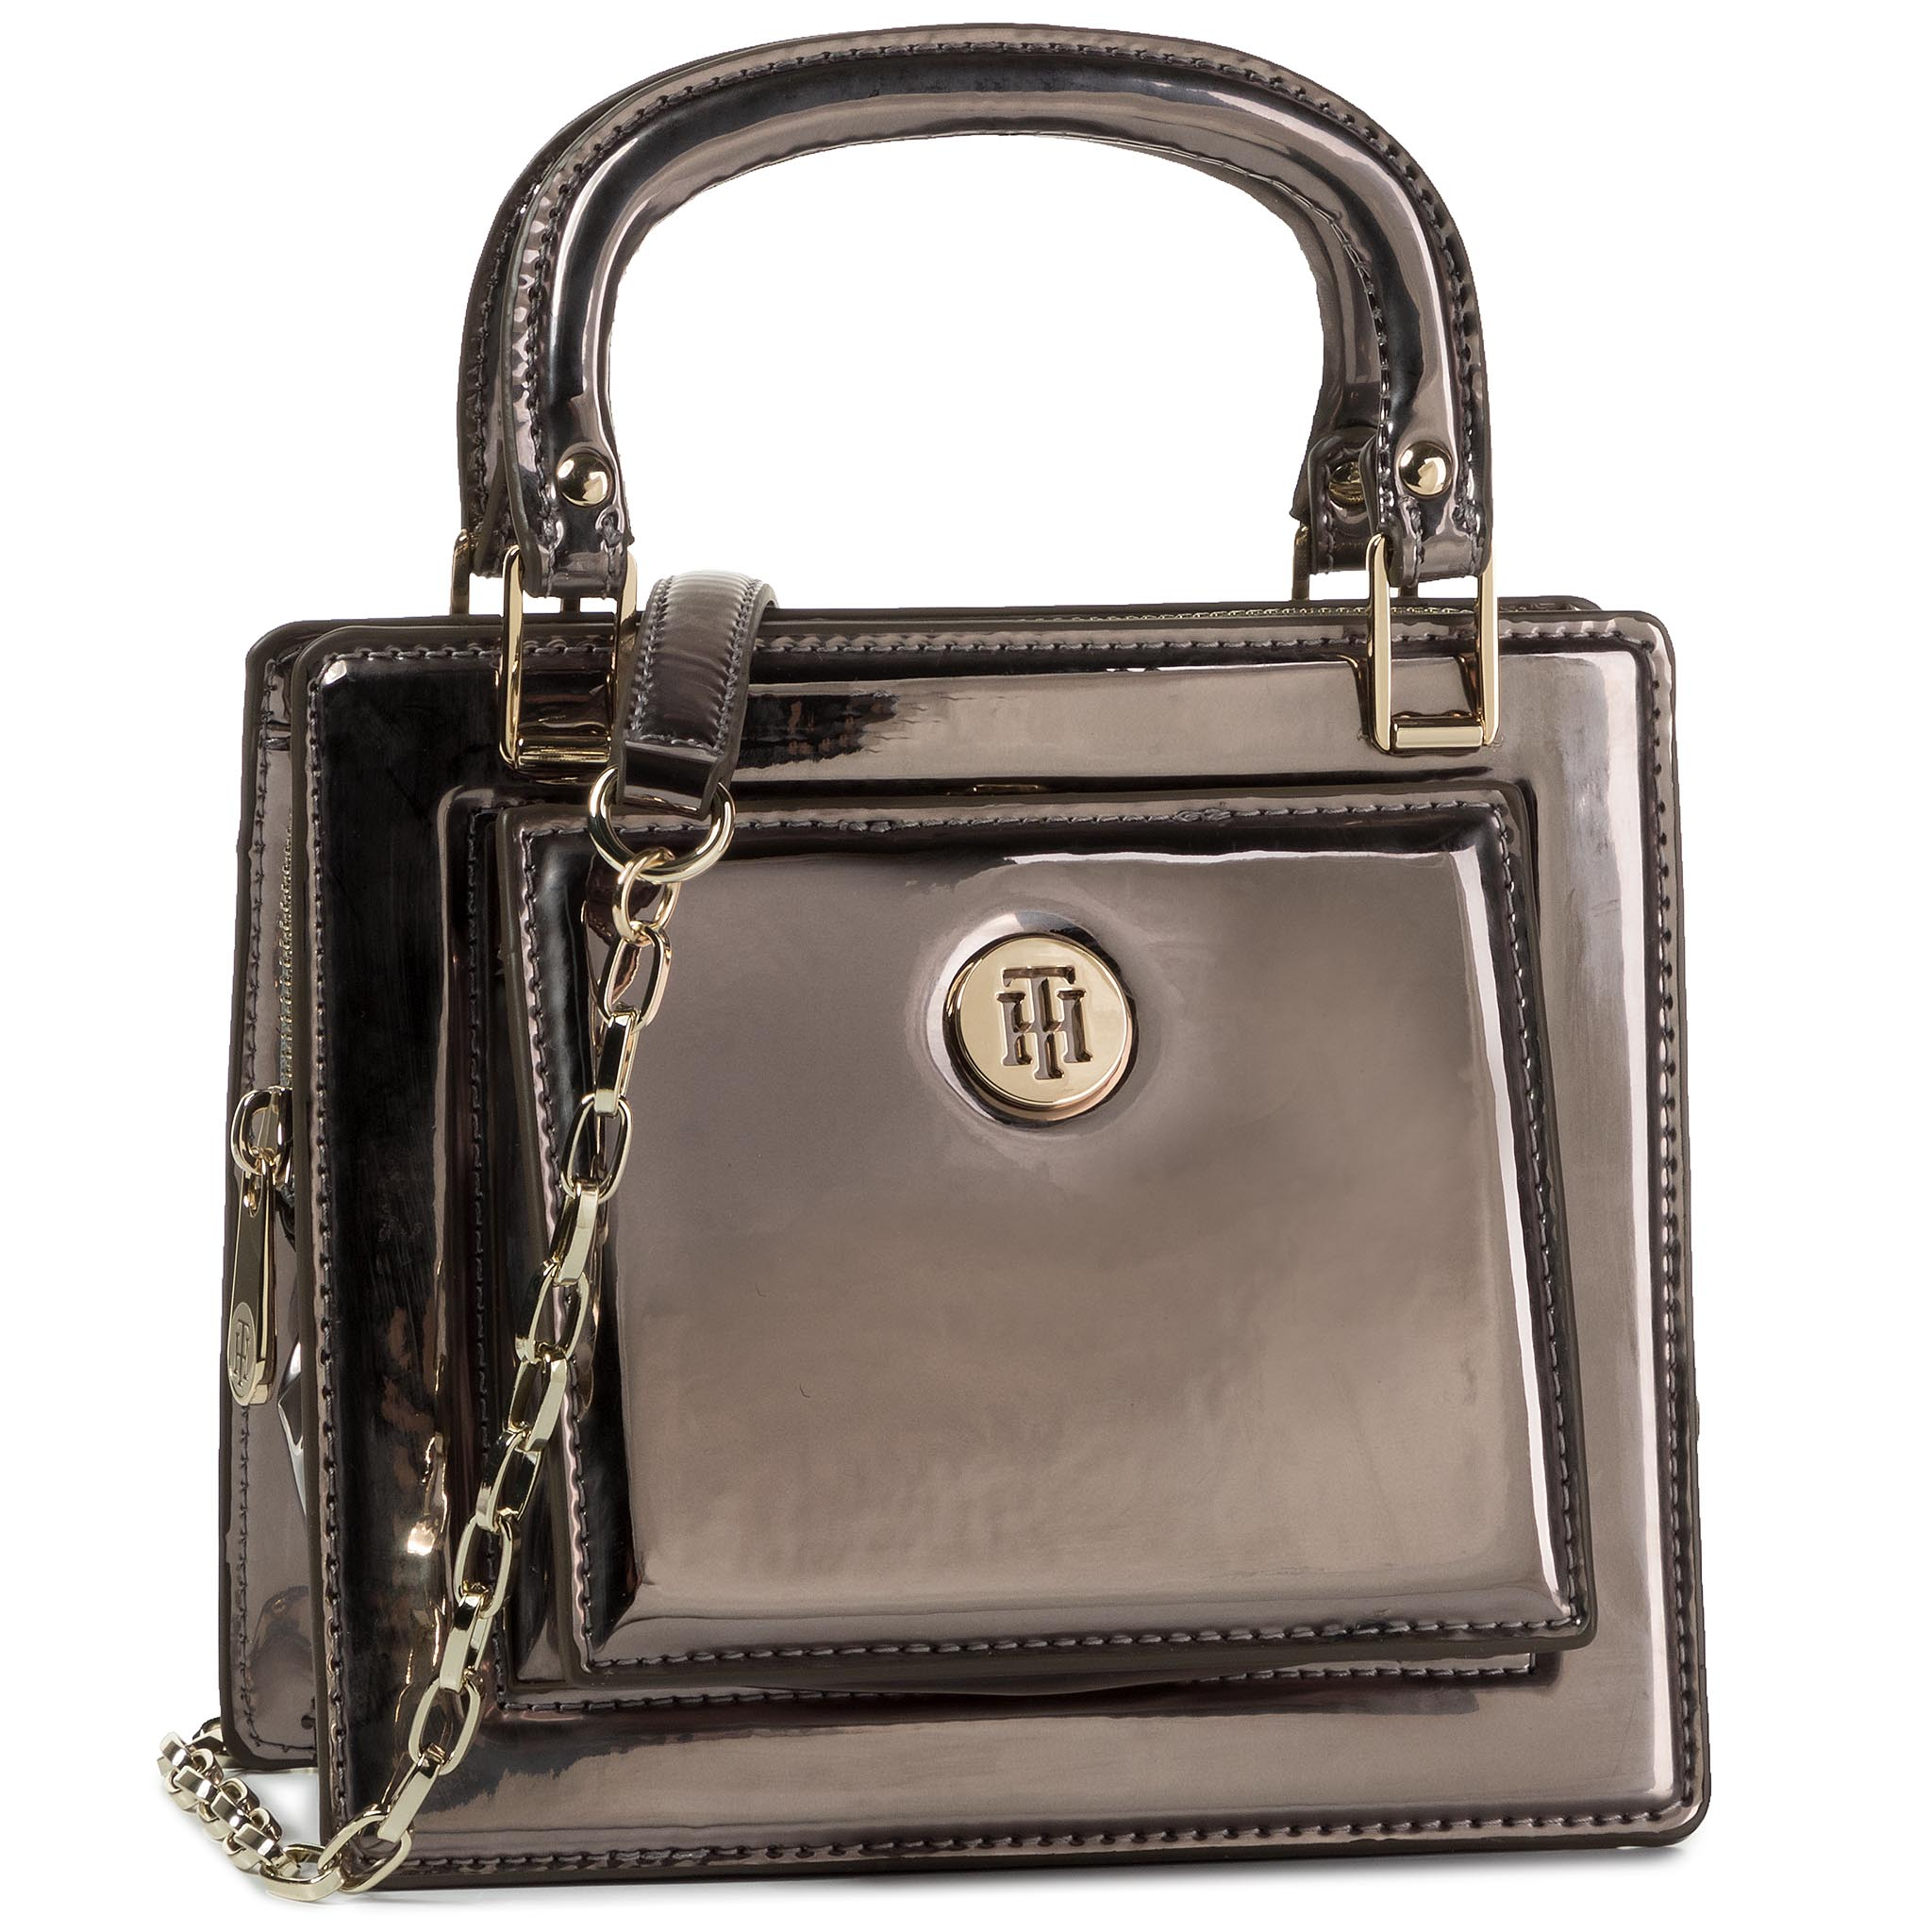 Geantă TOMMY HILFIGER - Fashion Crossover Metallic AW0AW08219 BLK